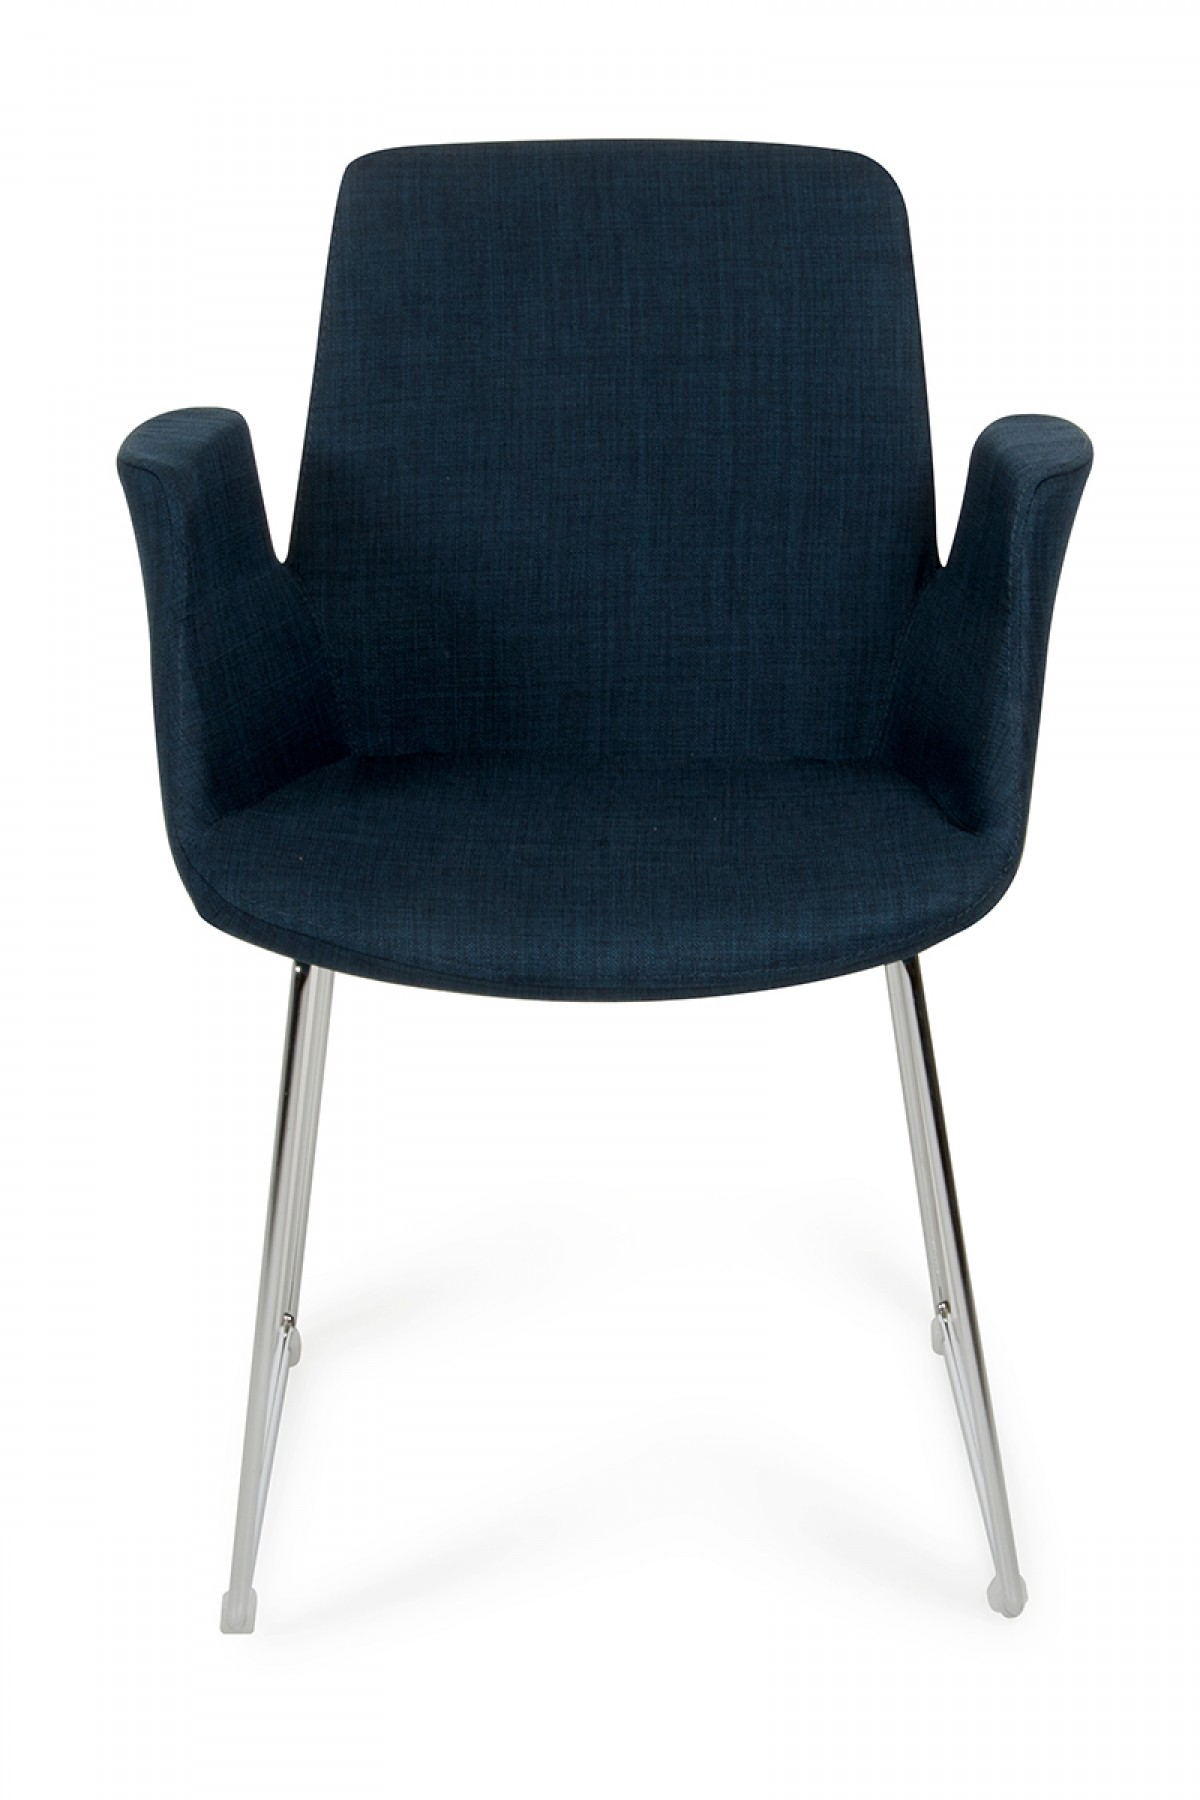 Modrest altair modern blue fabric dining chair for Contemporary fabric dining chairs